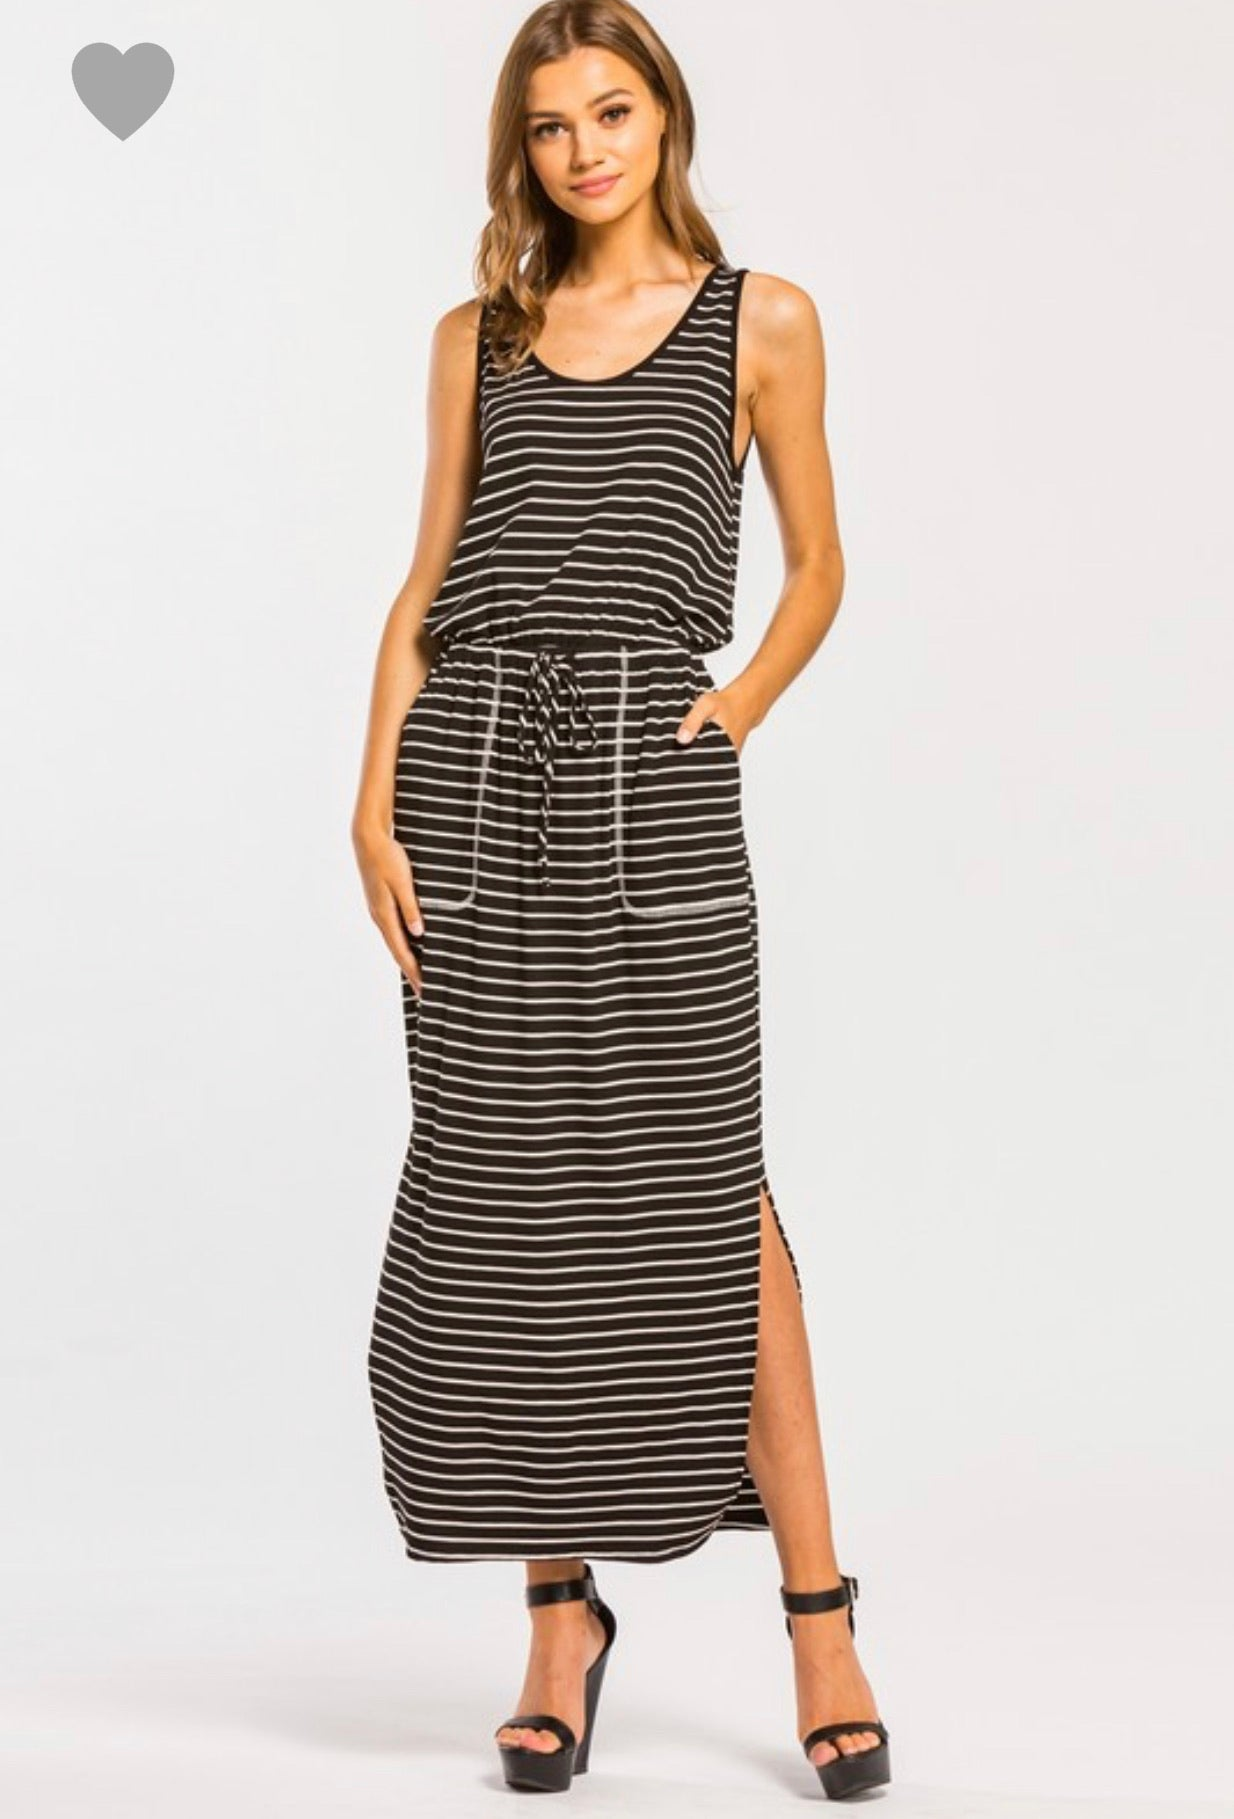 Sleeveless midi dress with pockets